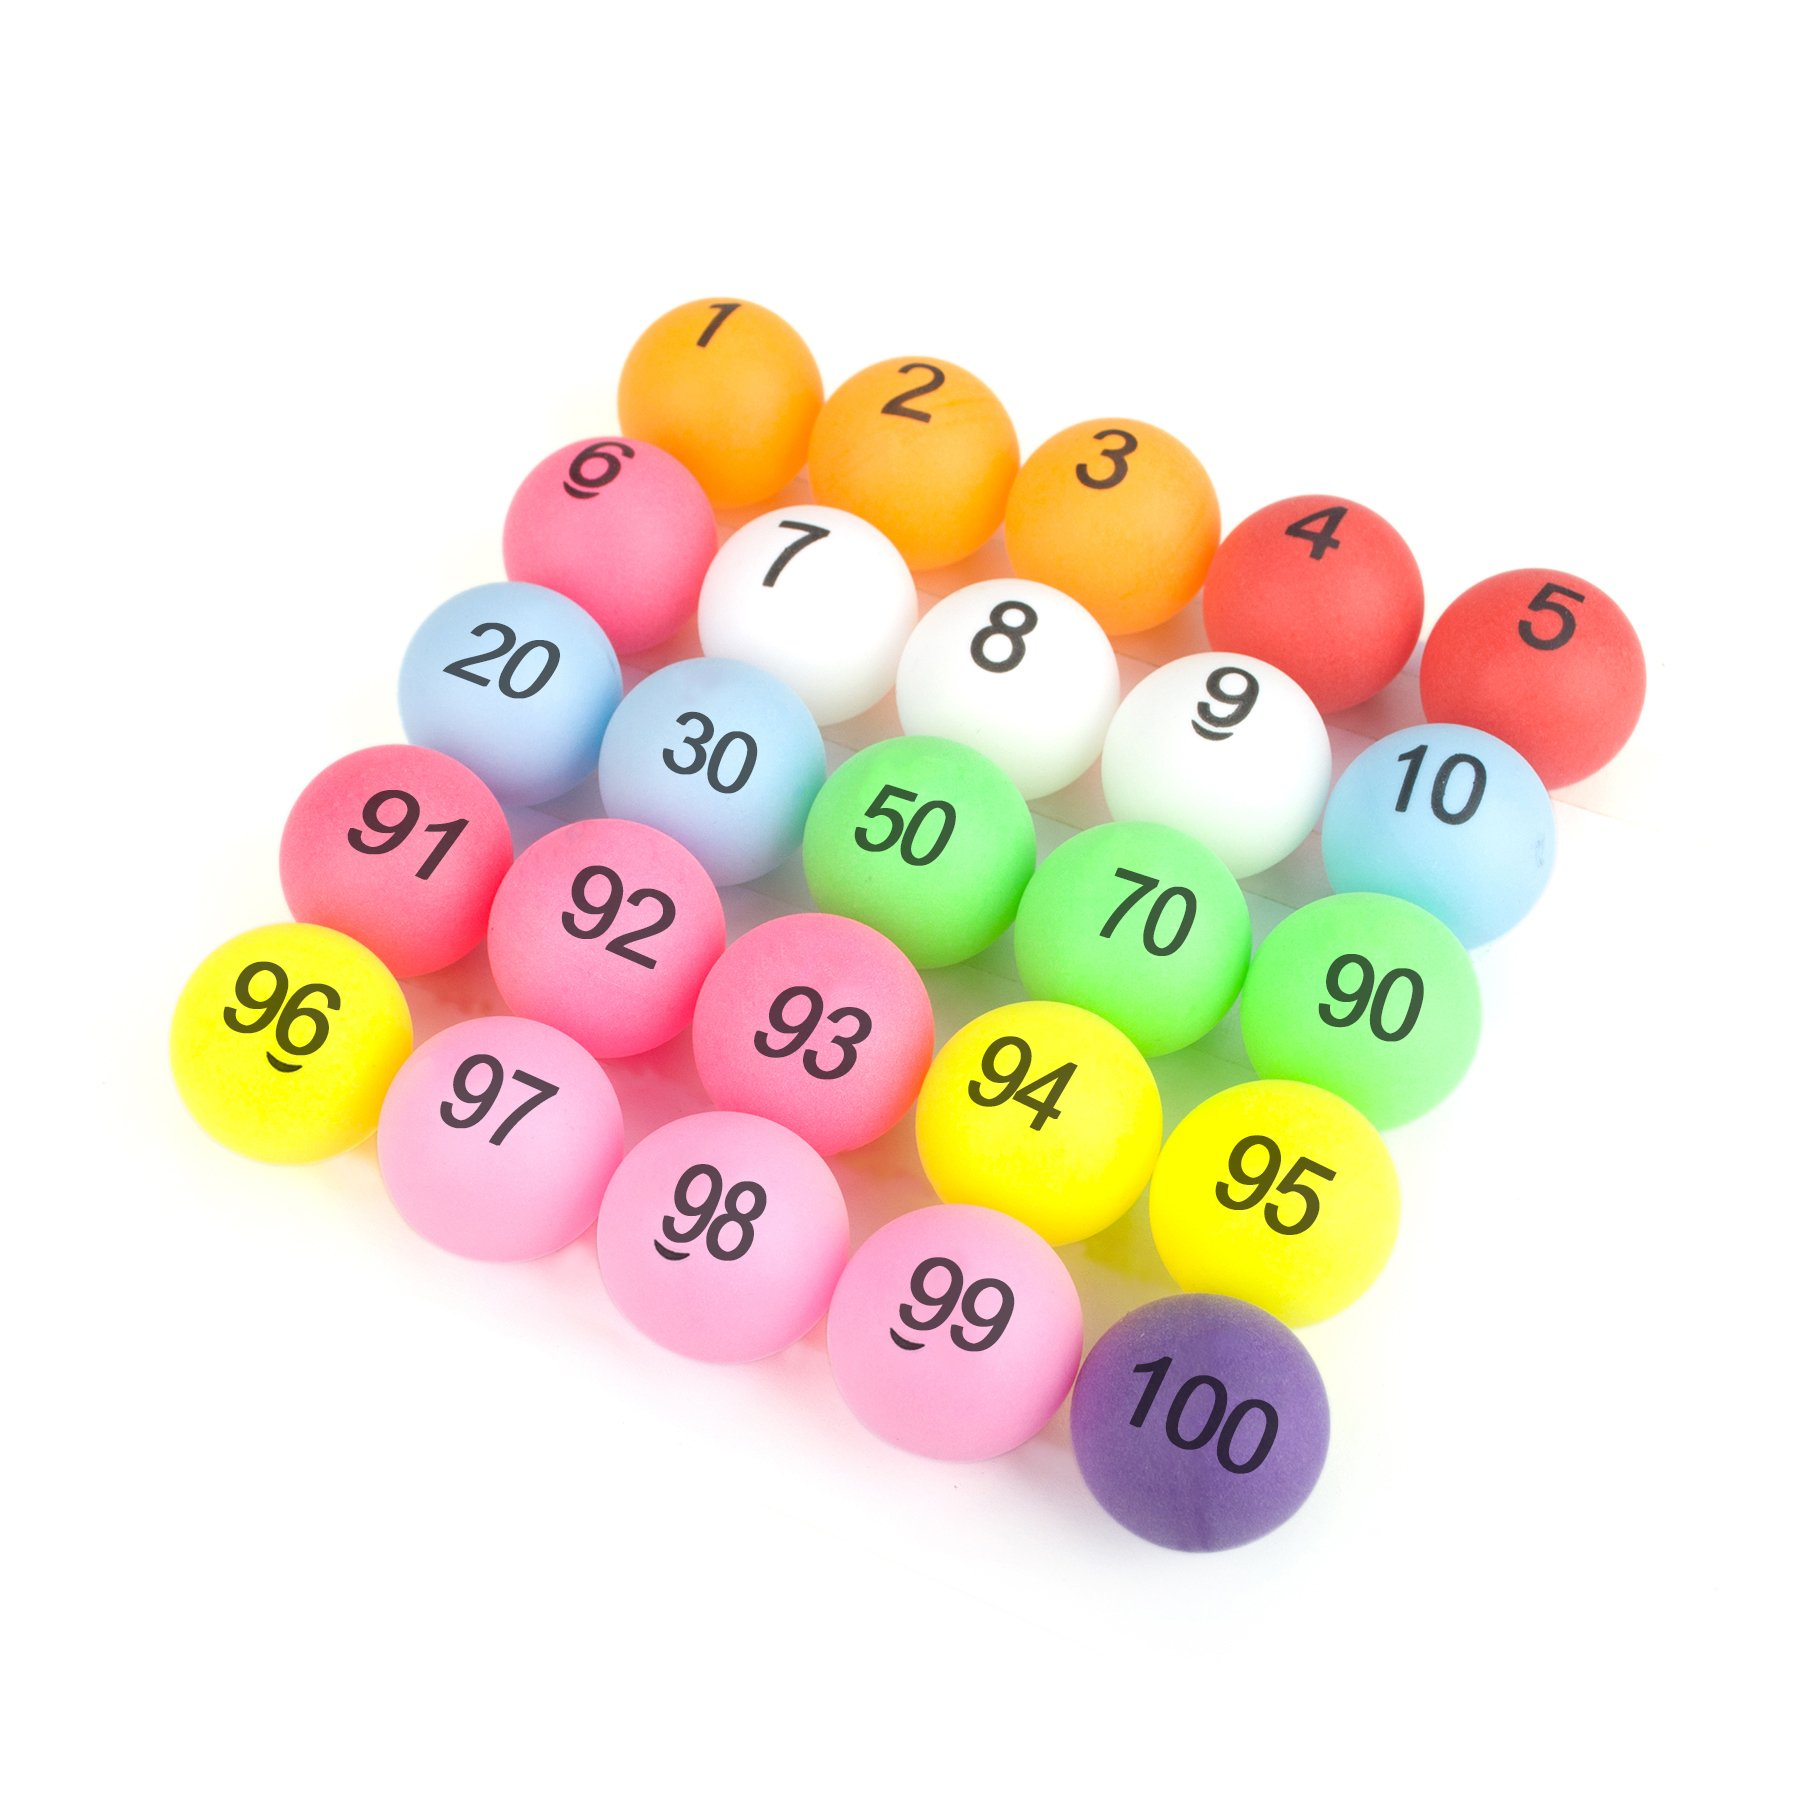 GOGO (No. 1-50 Numbered Beer Pong Balls, 40mm Table Tennis Balls, Assorted Raffle Ball